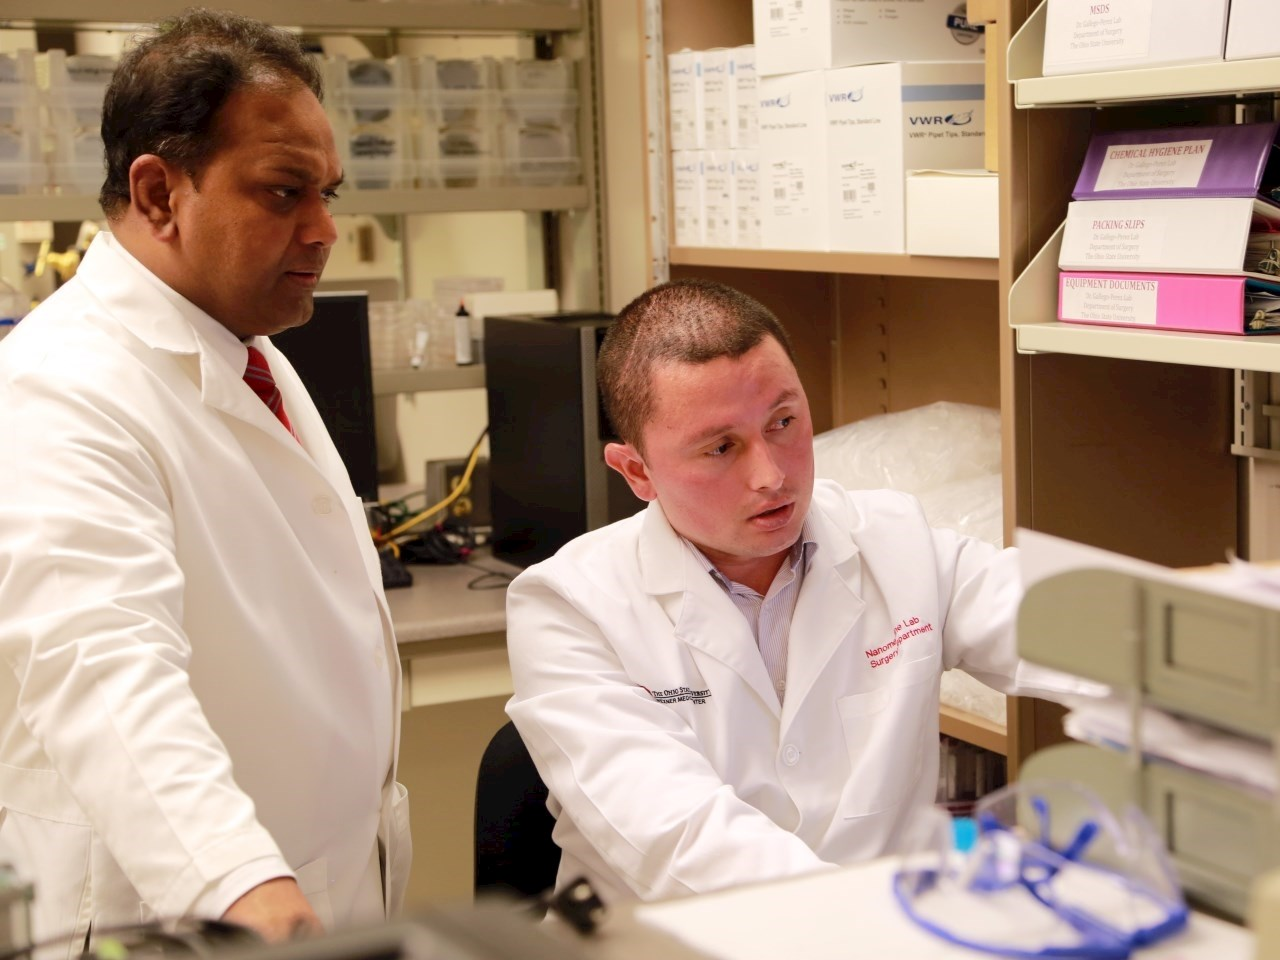 Chandan Sen, PhD, left, looks at study data with Daniel Gallego-Perez